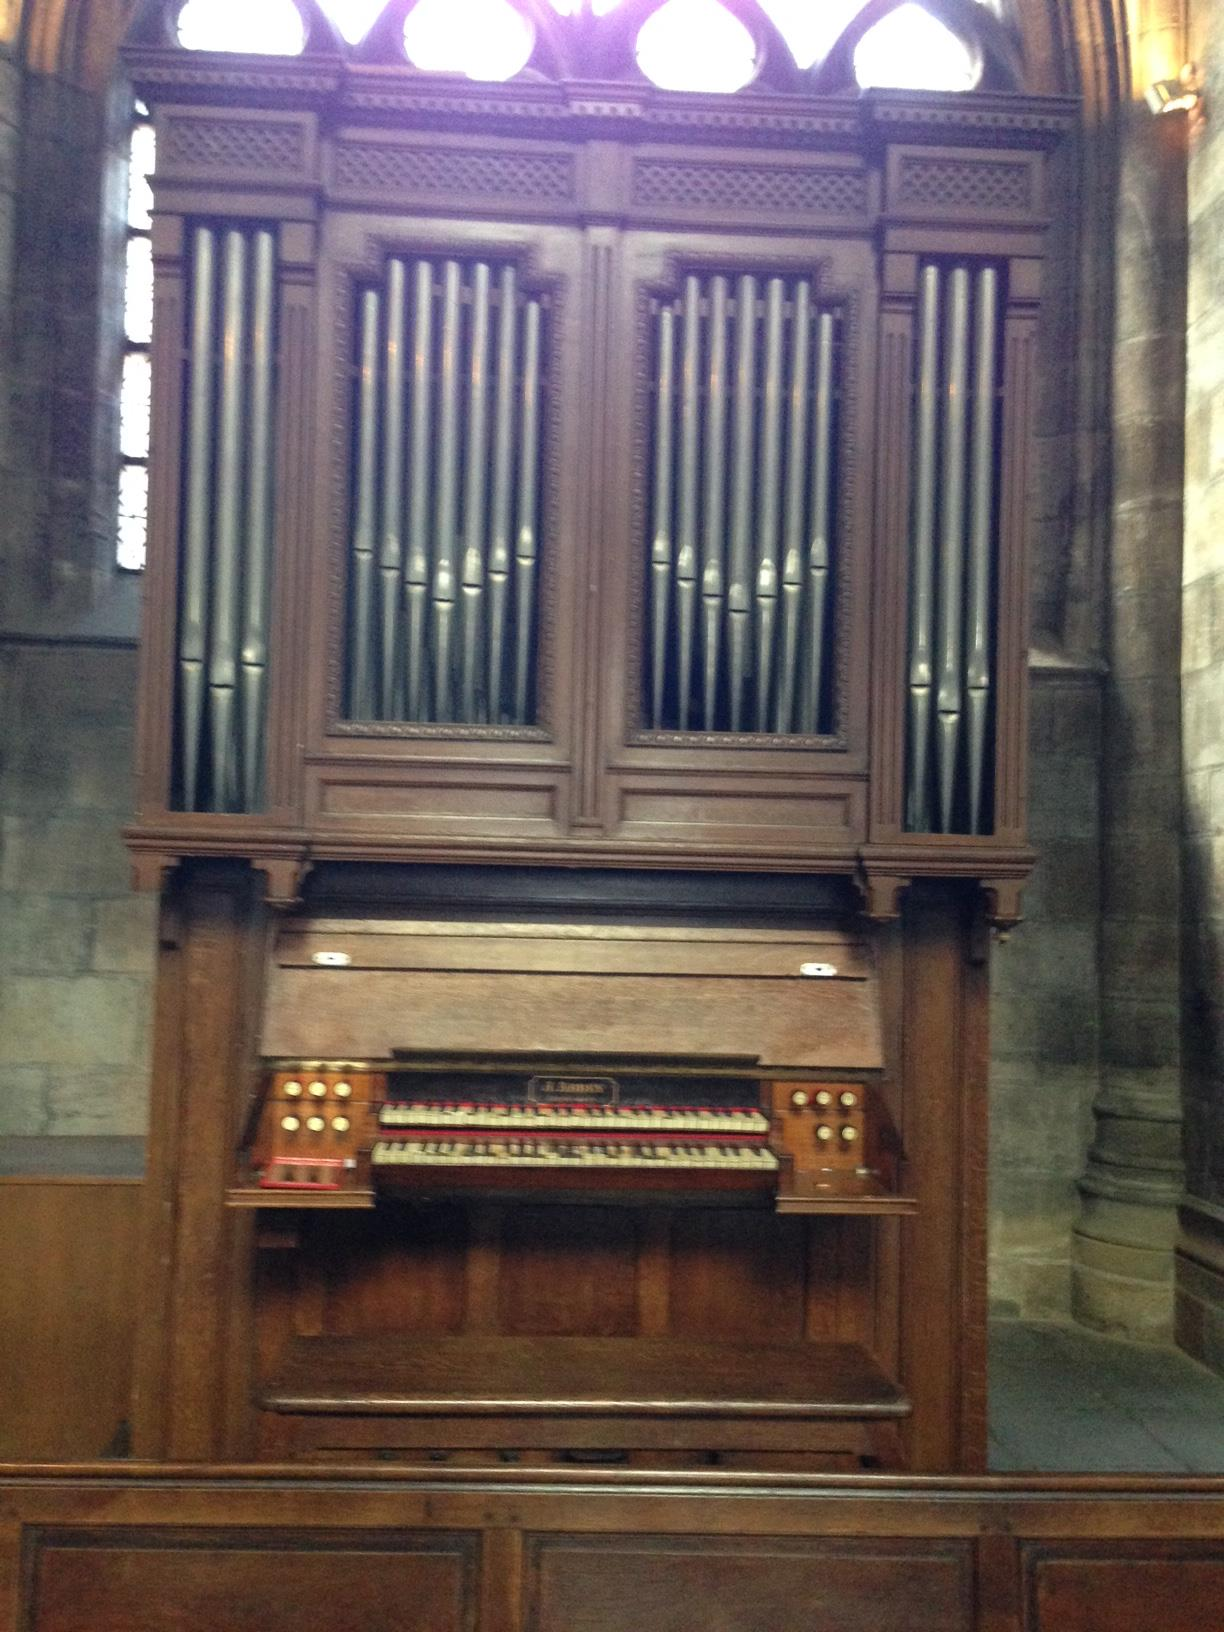 ORGUE JOHN ABBEY DE LA CATHEDRALE DE MOULINS